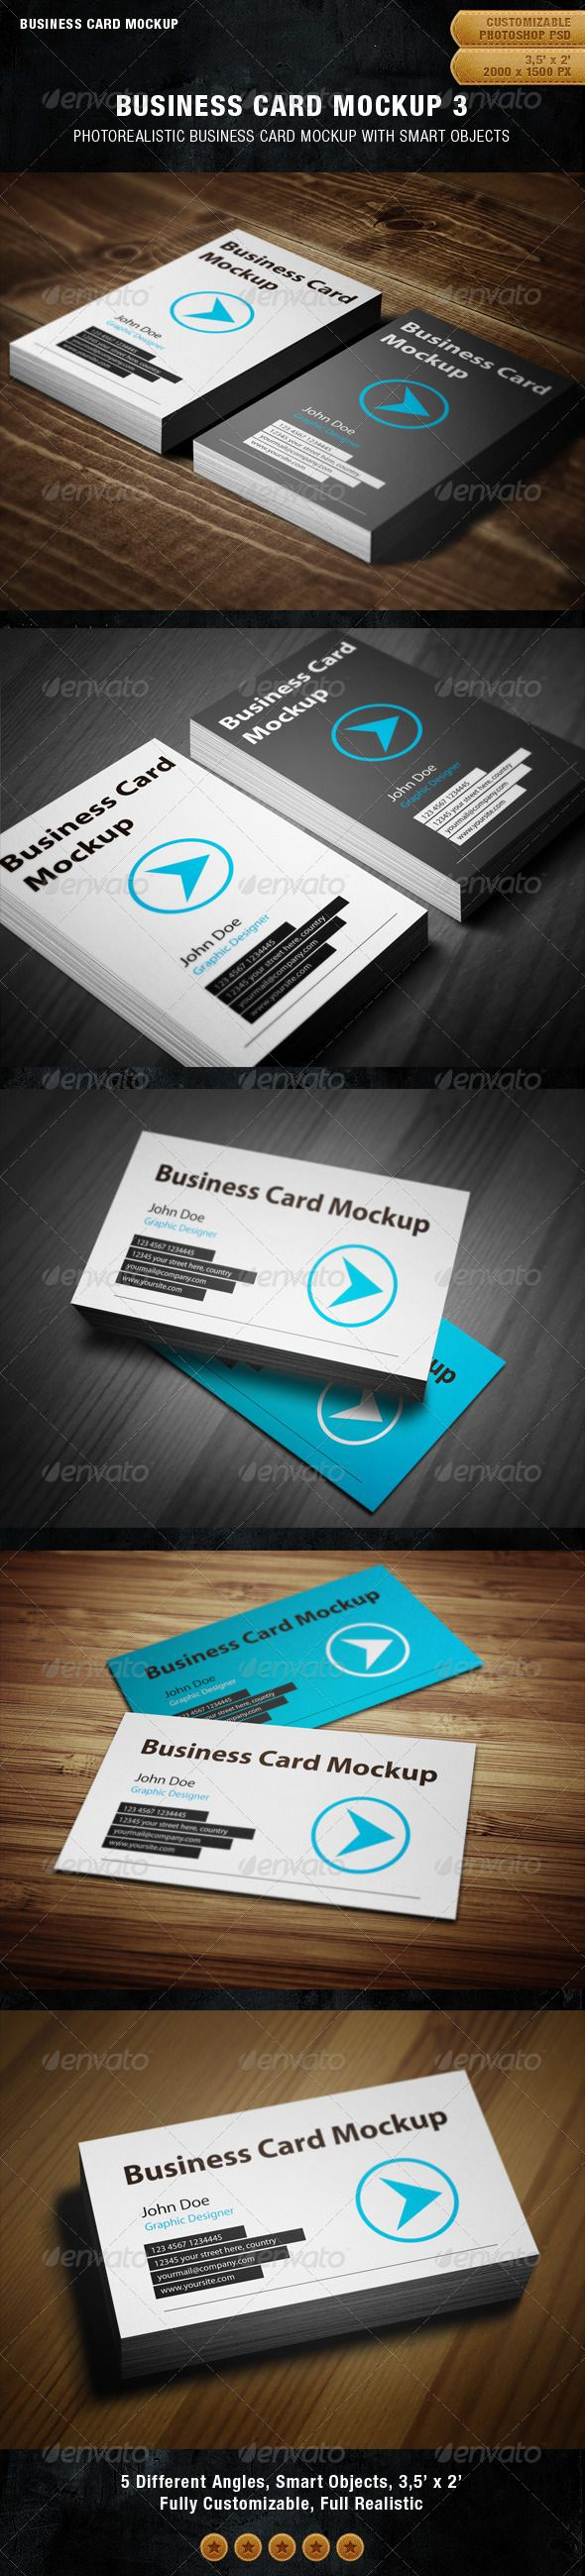 The 718 best business card mockup images on pinterest miniatures business card mockup 3 colourmoves